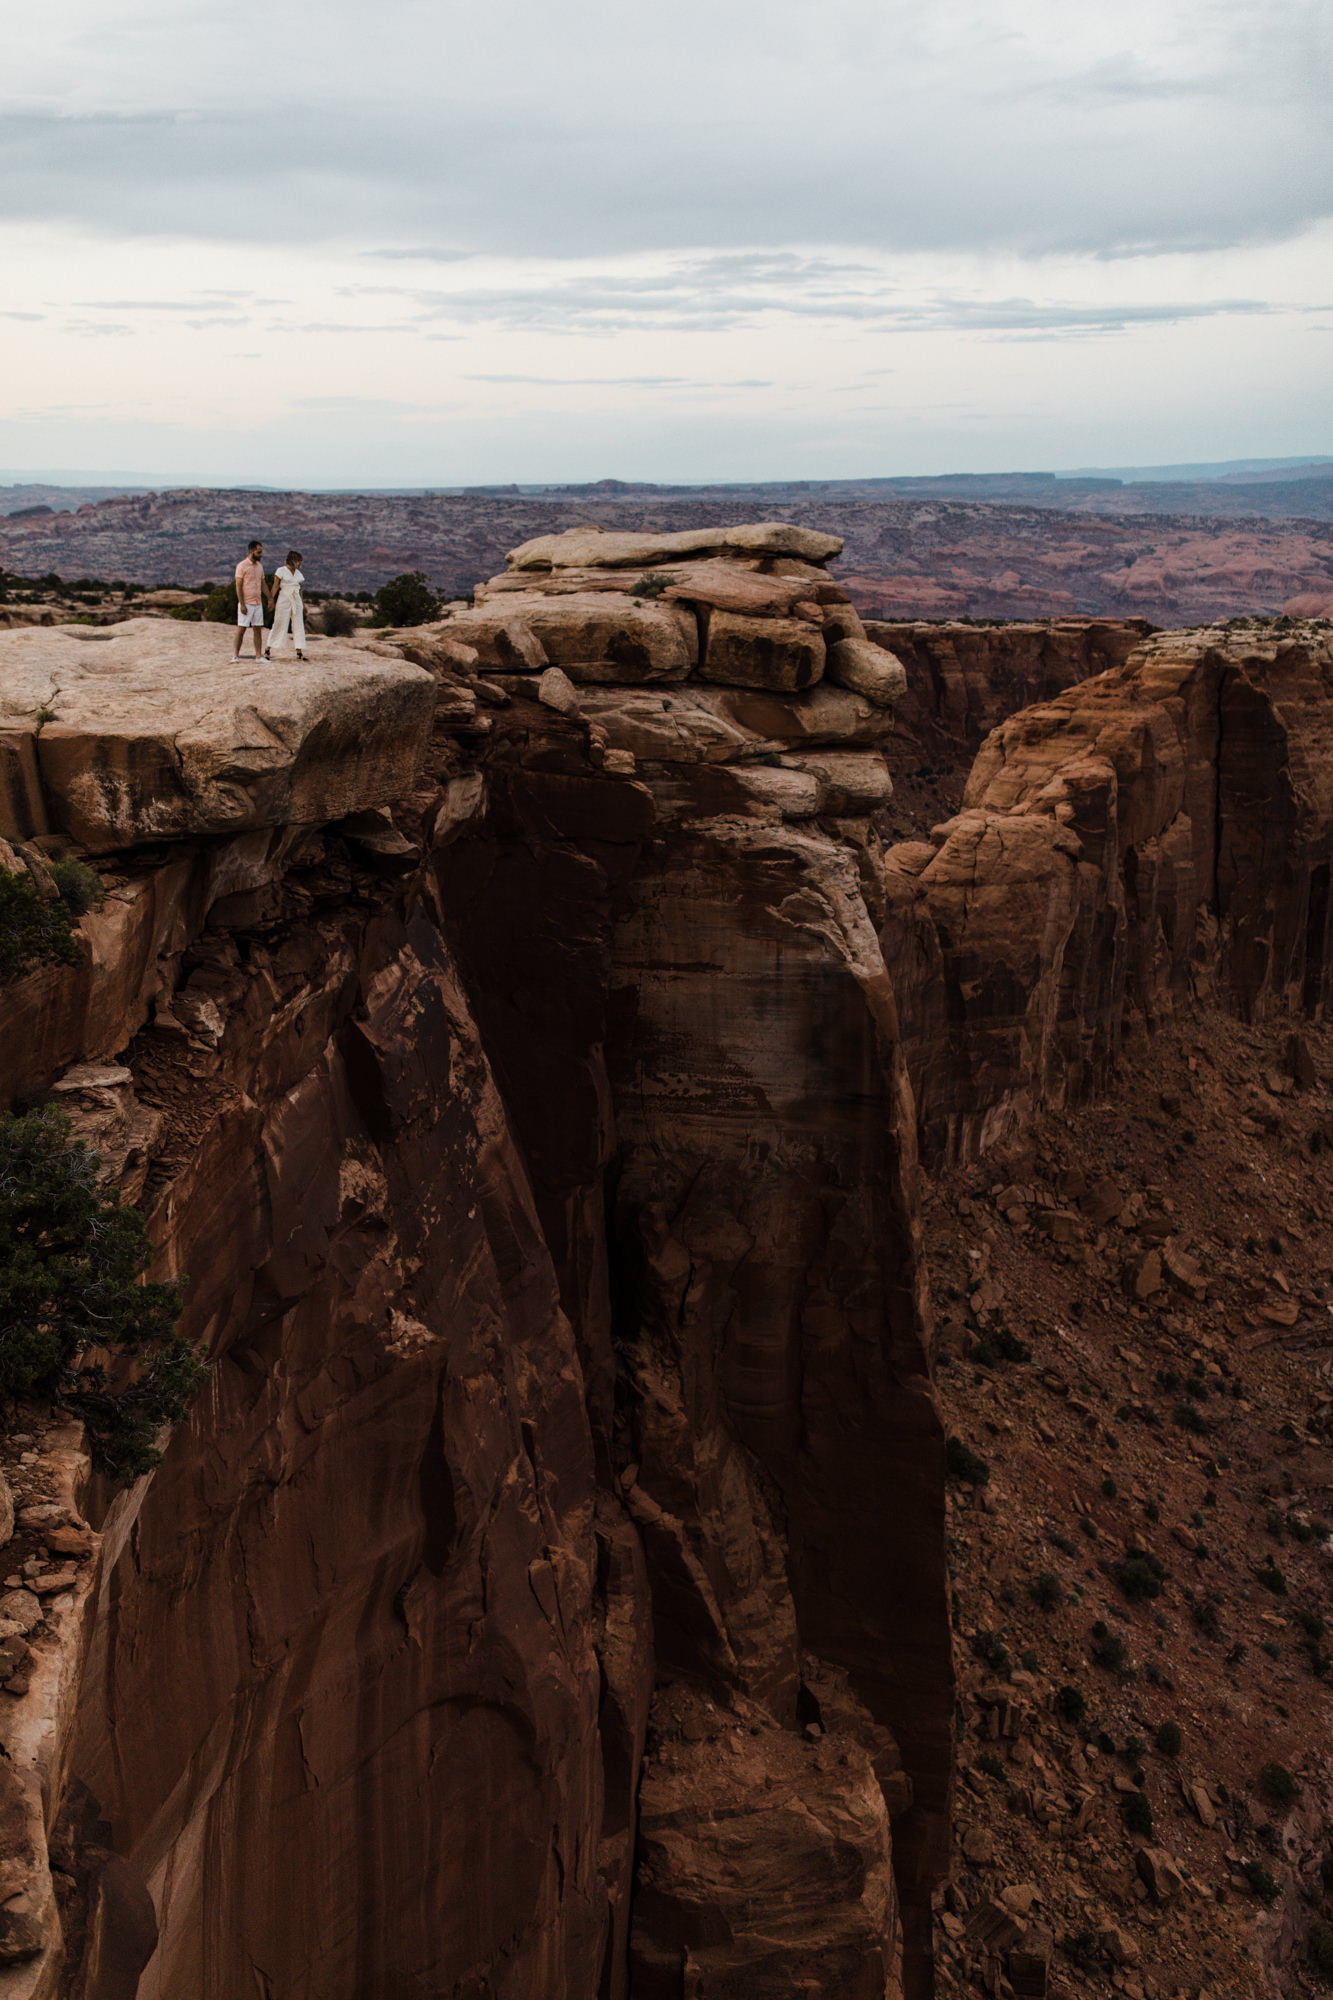 moab, utah adventurous elopement | utah intimate wedding photographer | jumpsuit bride | desert wedding inspiration | the hearnes adventure photography